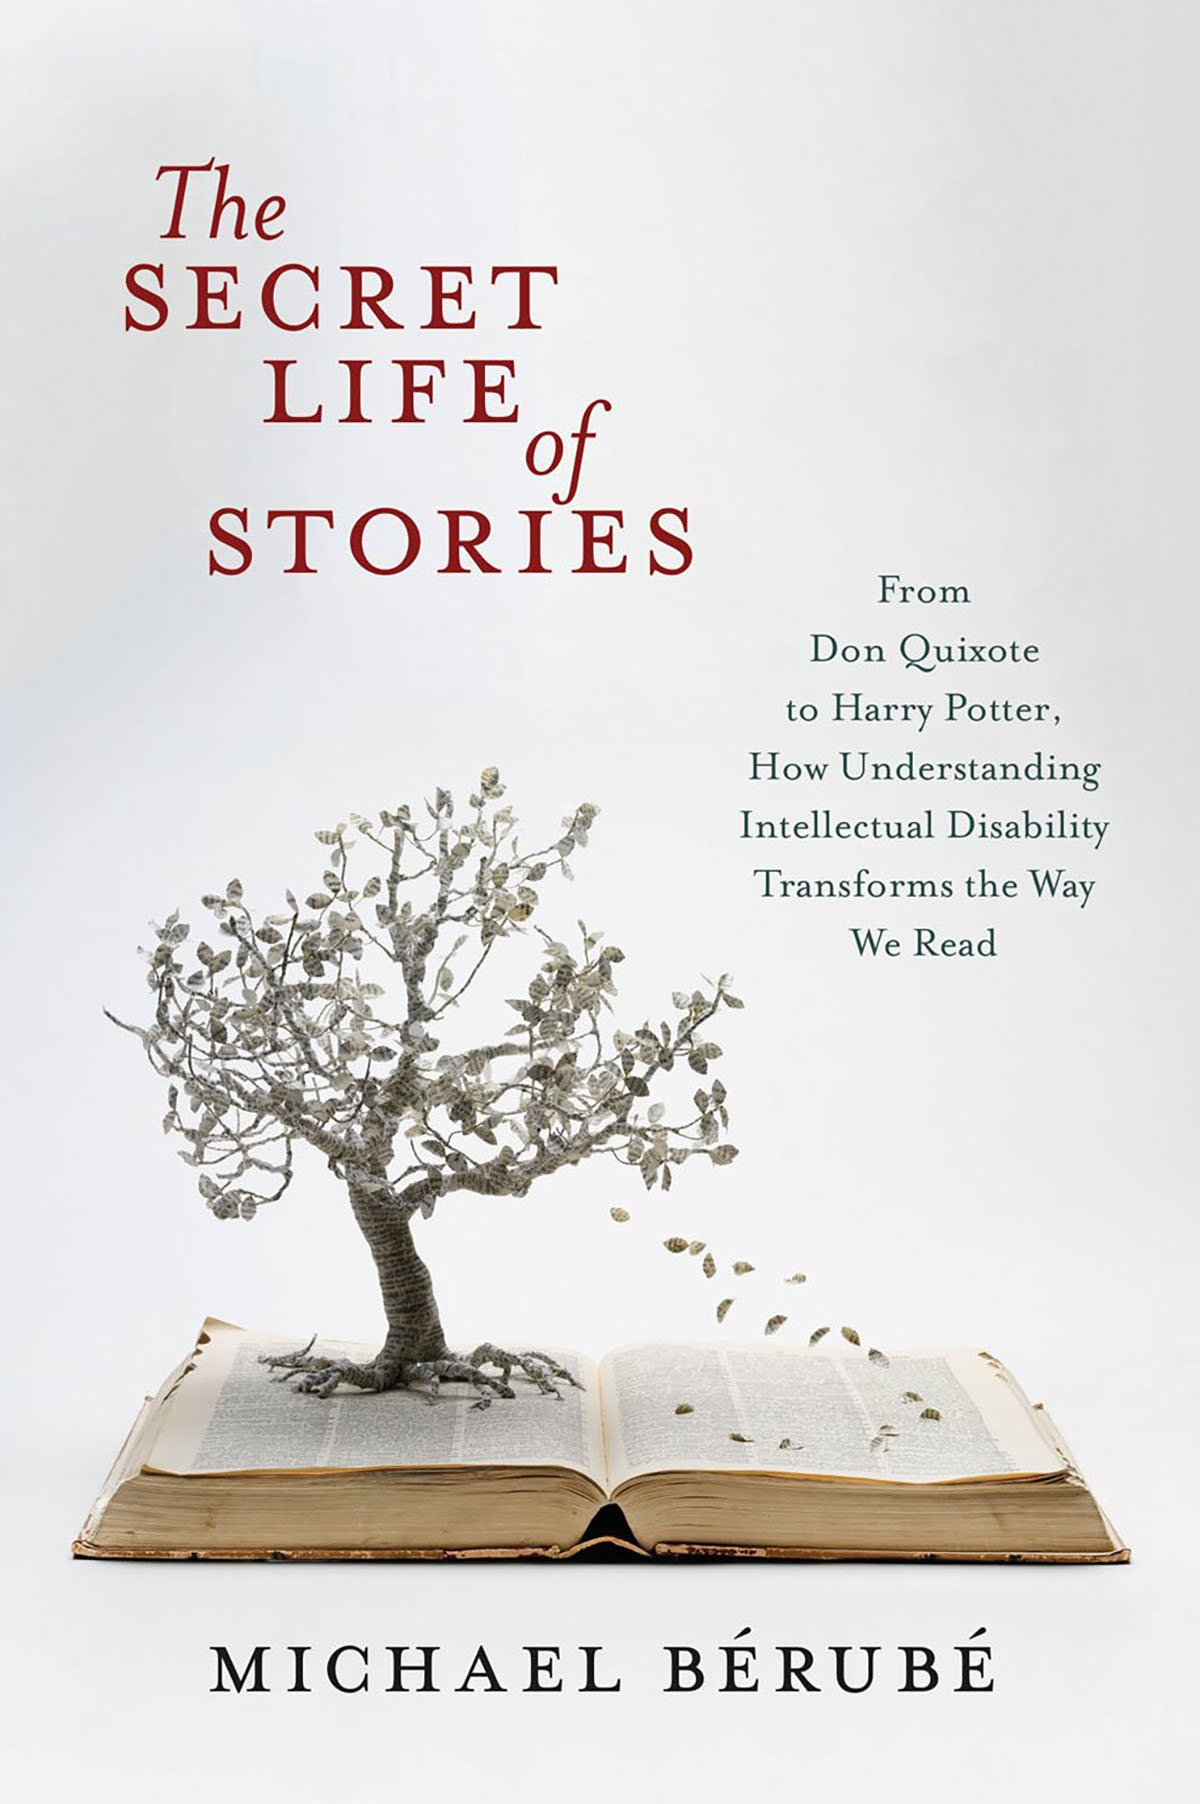 Grappling with Intellectual Disability: Michael Bérubé's The Secret Life of Stories